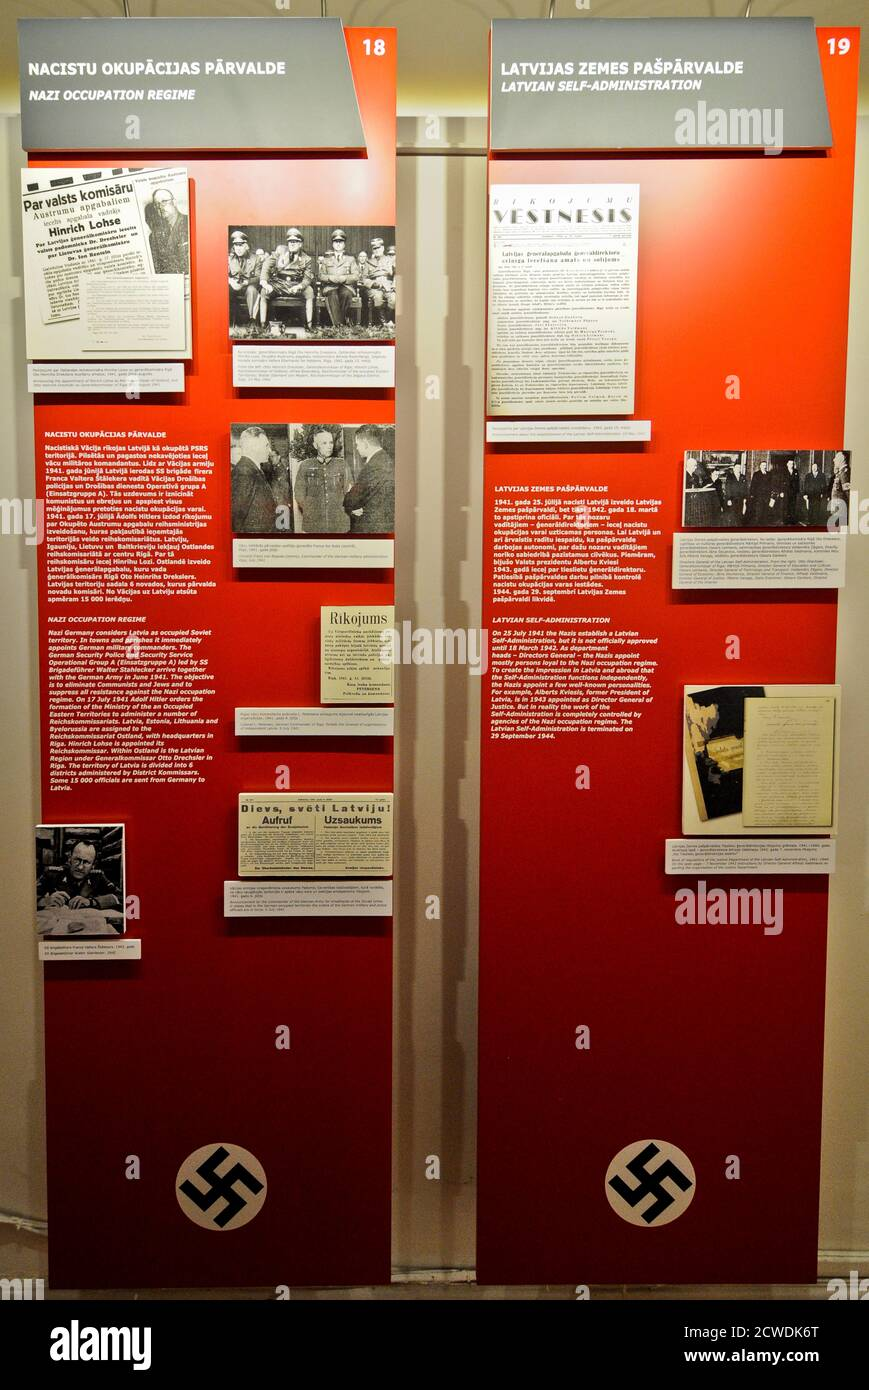 Museum of the Occupation of Latvia: Nazi occupation regime panel, Riga Stock Photo